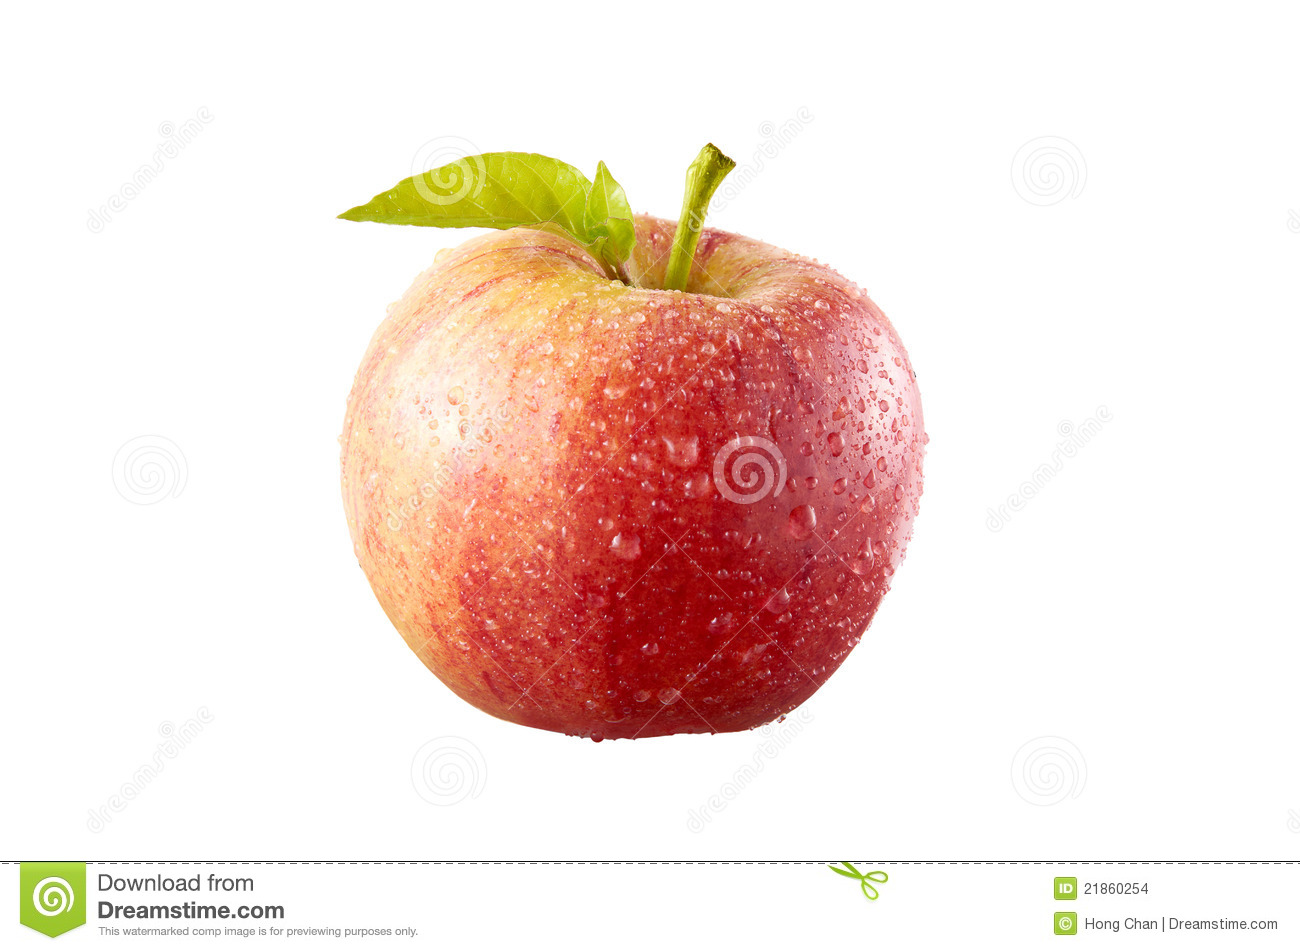 Apple rouge